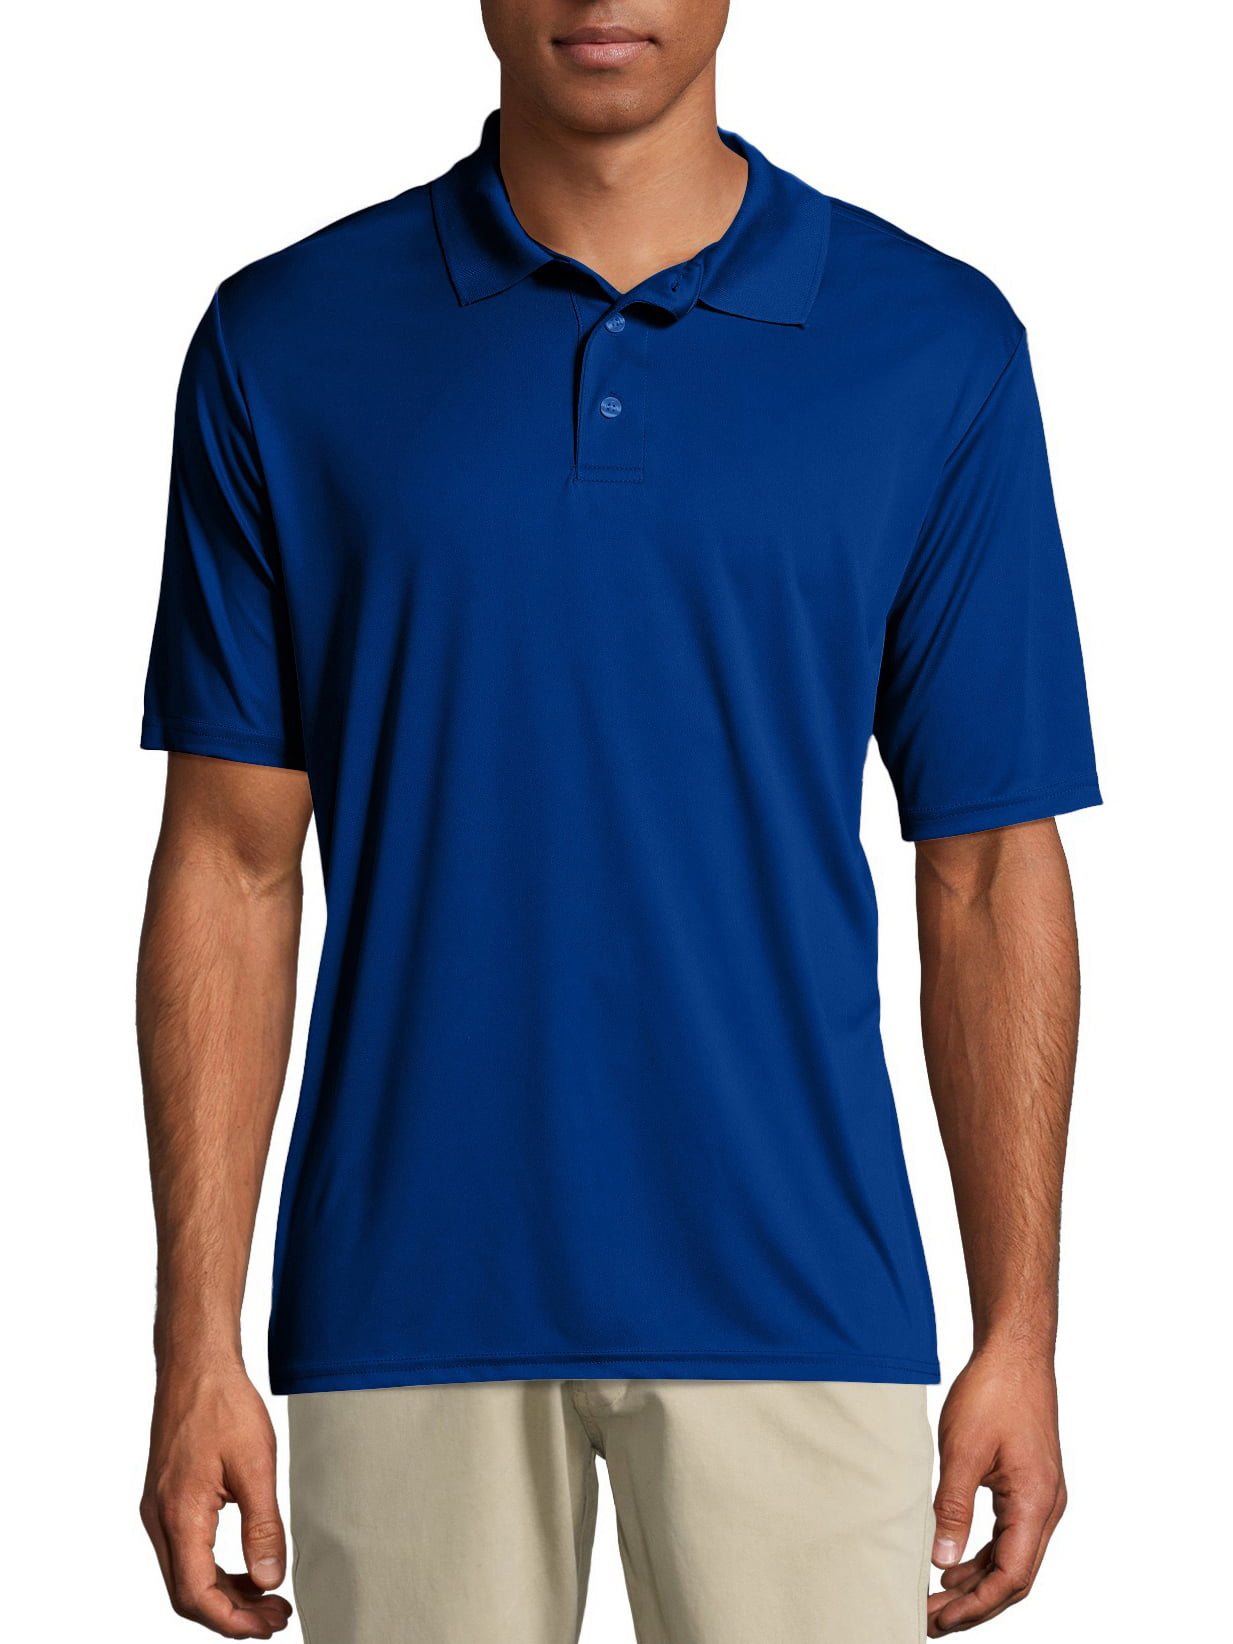 465be6b1 Sport Men's CoolDri Performance Polo (50+ UPF) - Walmart.com